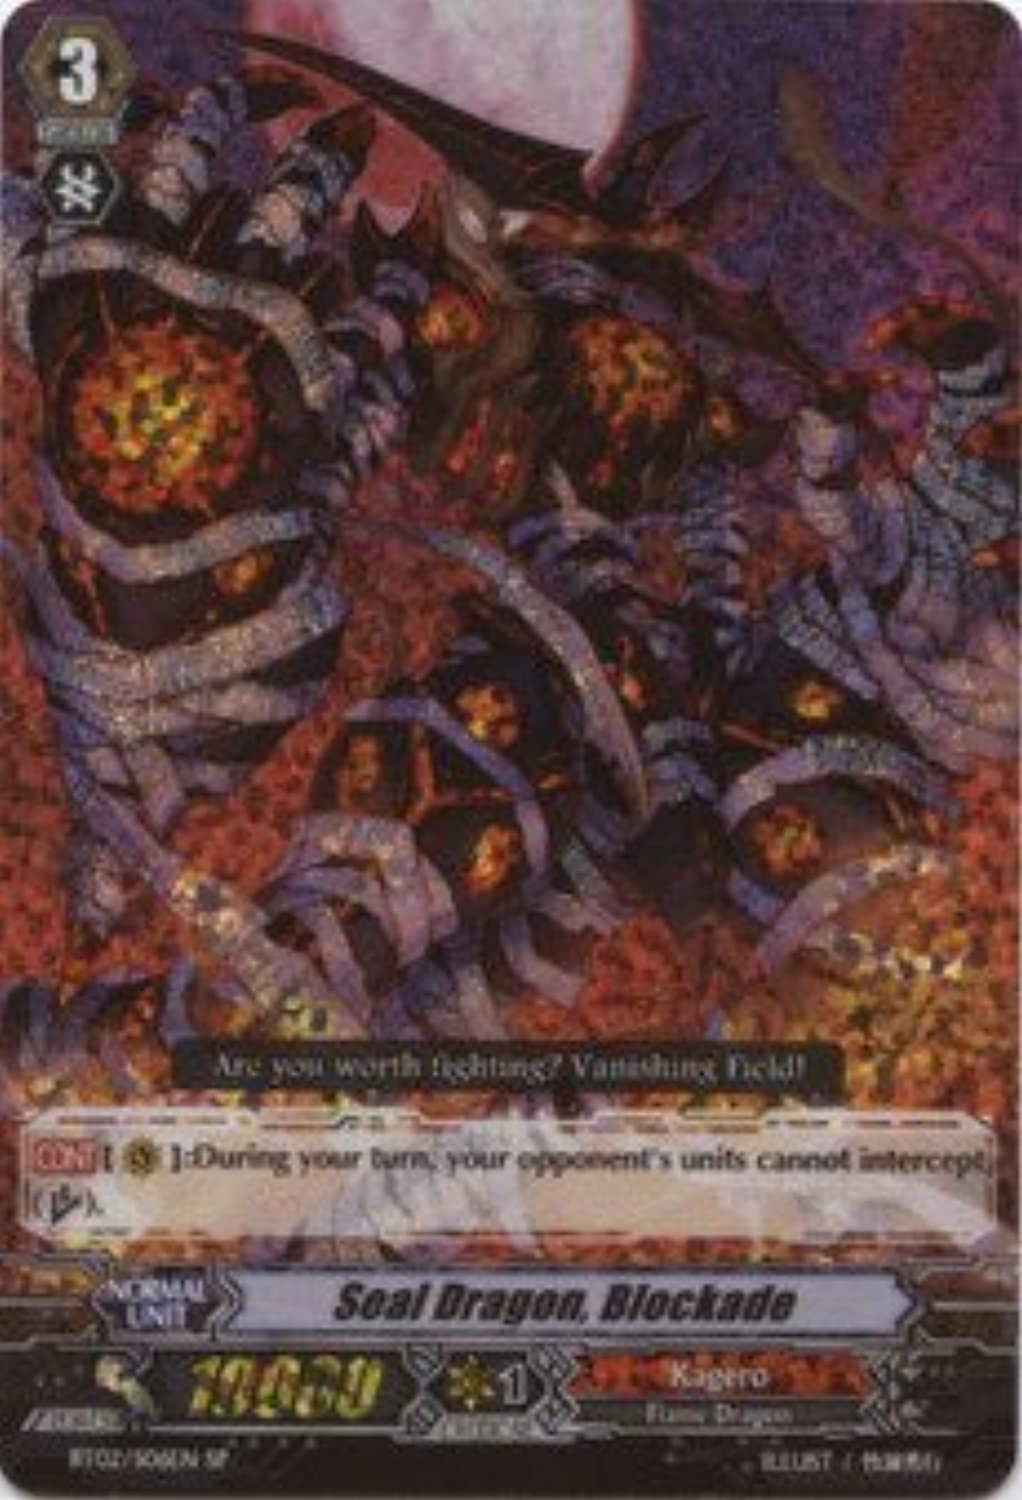 Cardfight   Vanguard TCG  Seal Dragon, Blockade (BT02 S06EN)  Onslaught of Dragon Souls by Cardfight   Vanguard TCG